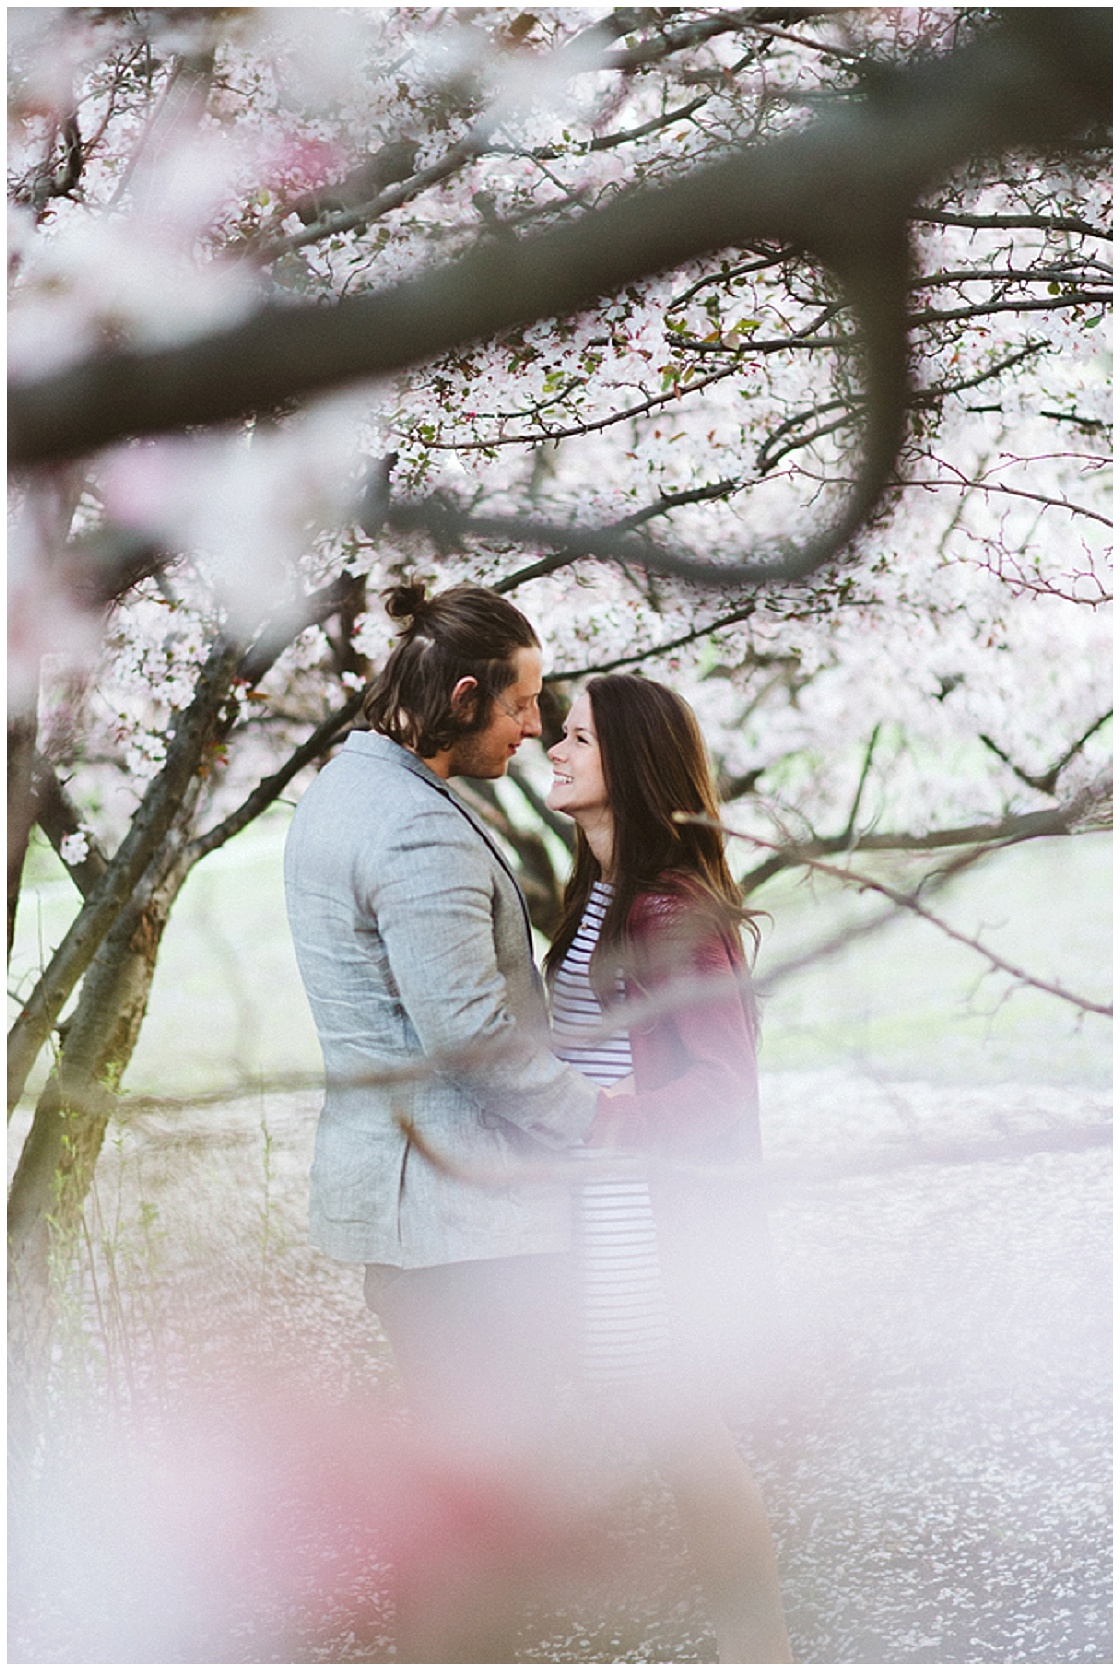 Cherry Blossom Engagement Session | Indigo Lace Collective | Joy Wed blog | http://www.joy-wed.com